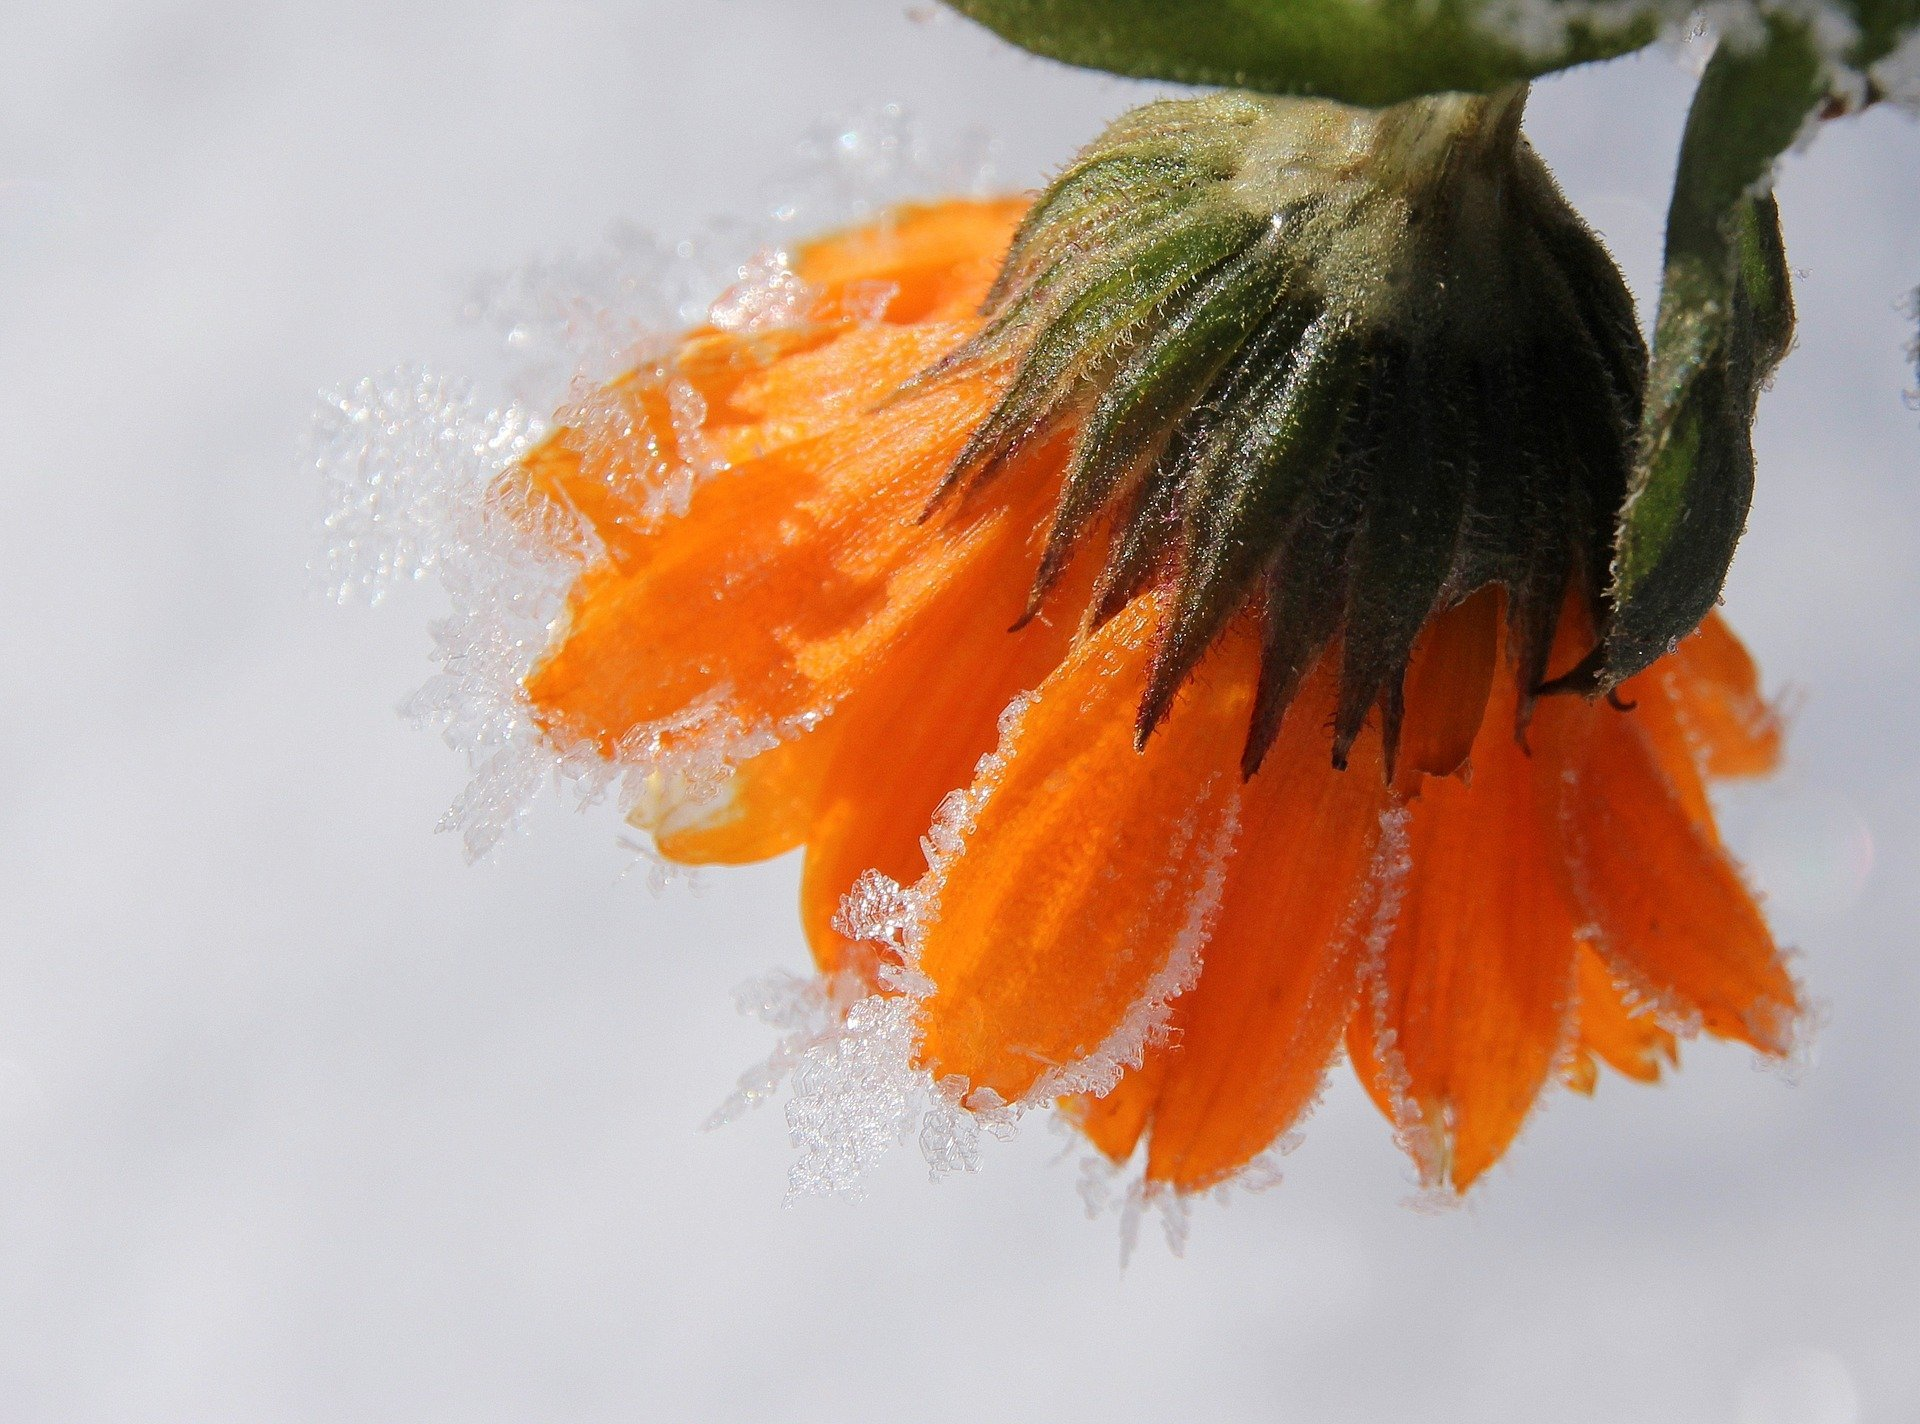 Close-up image of marigold petals with frost.